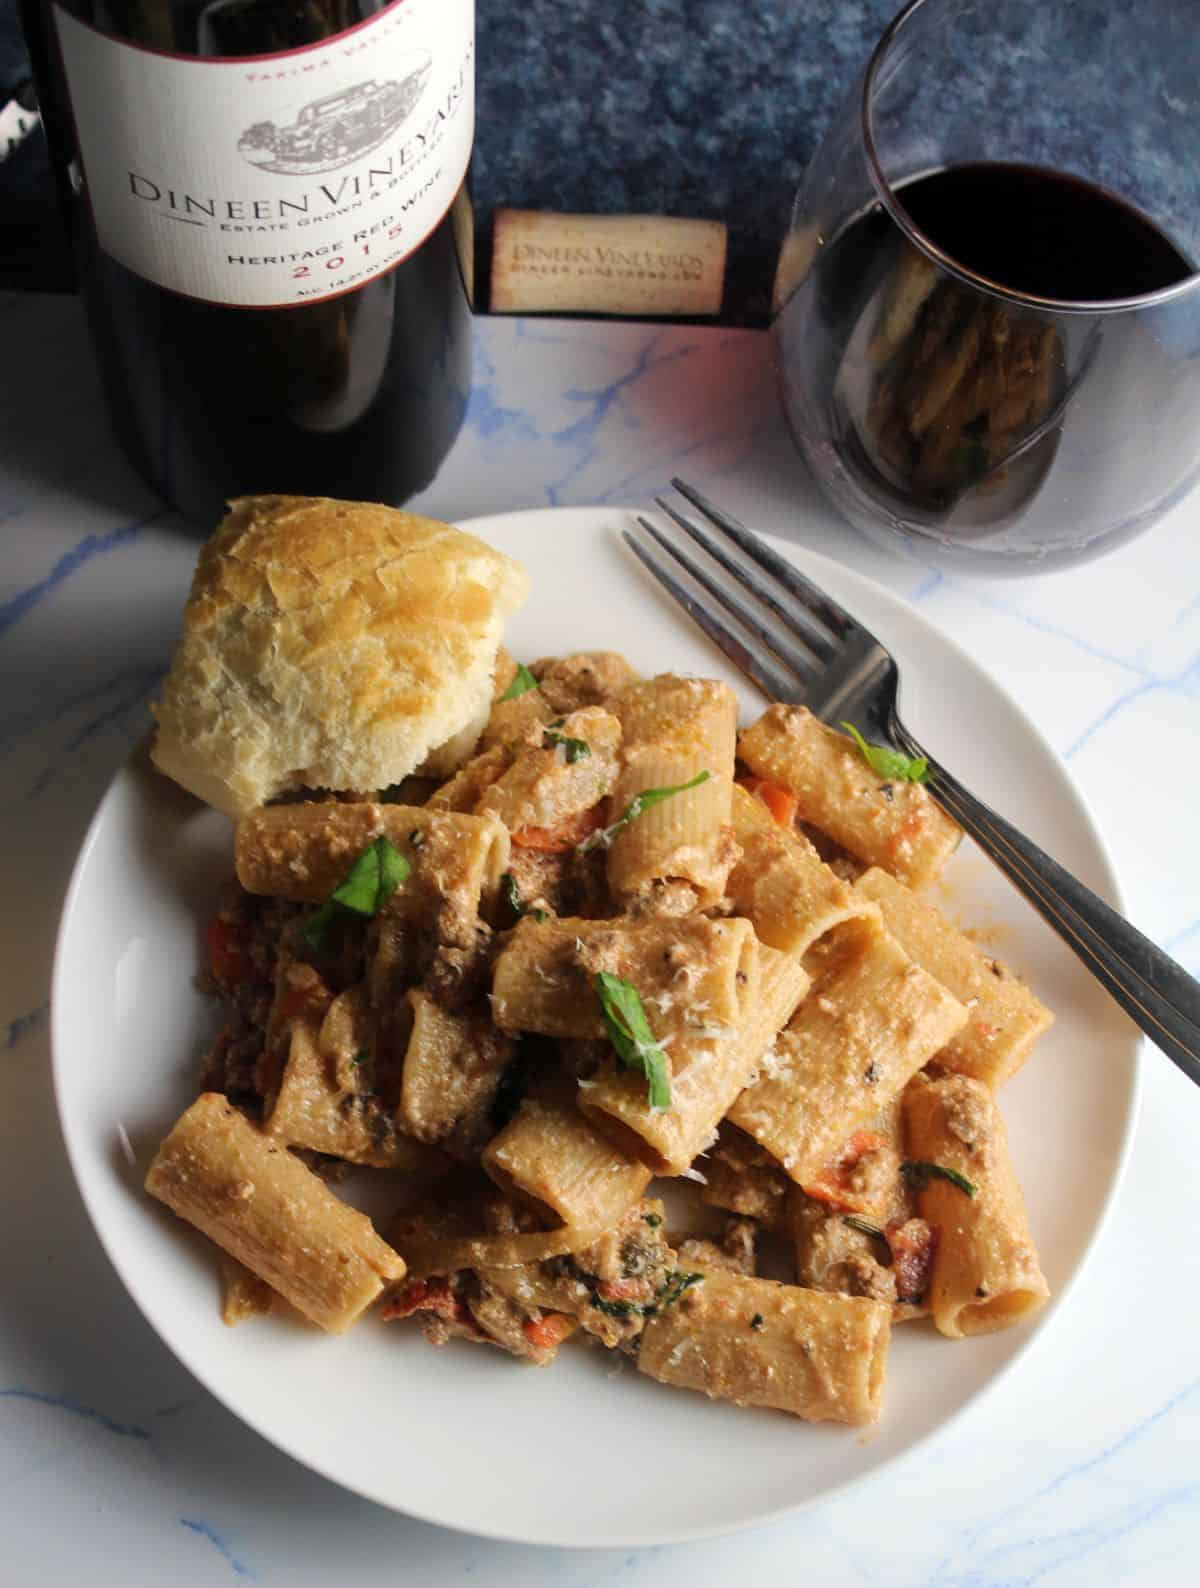 lamb ragu rigatoni on a white plate served with red wine.